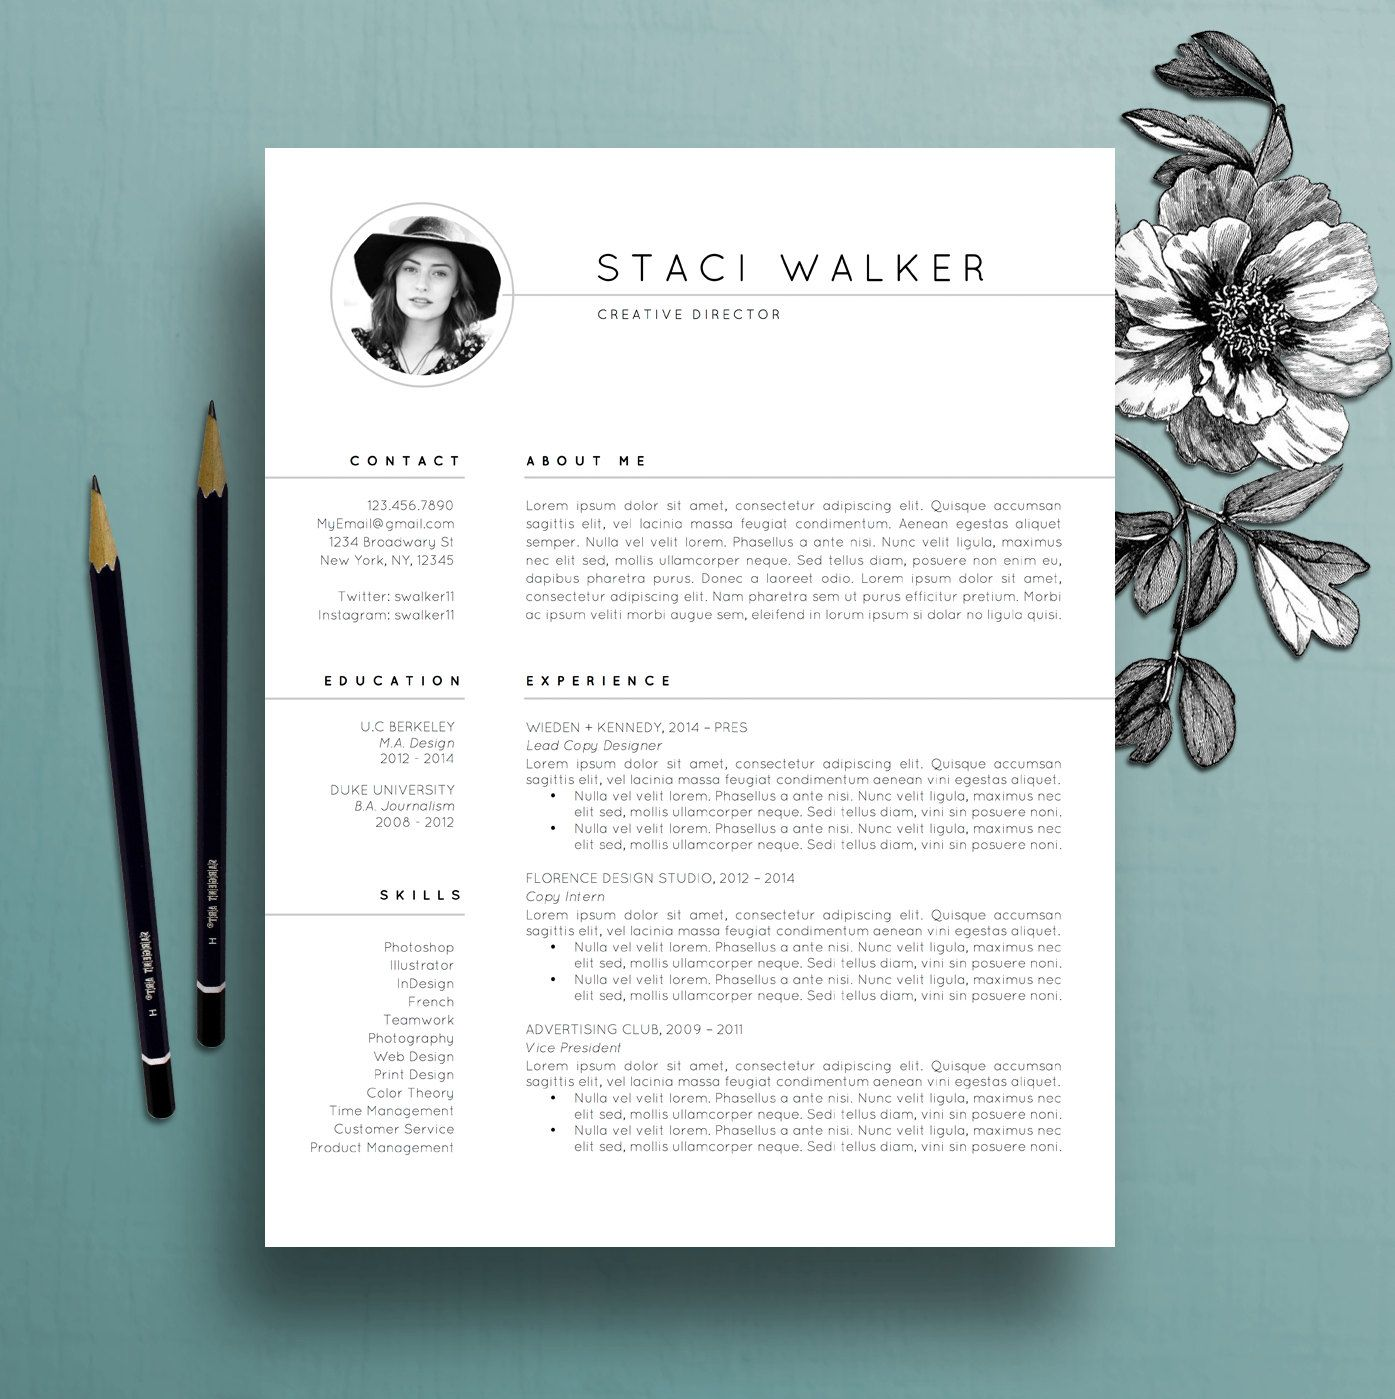 download job resume format%0A Modern Resume Template  pk  CV Template   References Letter  Creative Resume  Template  Professional Resume  Instant Digital Download  Staci